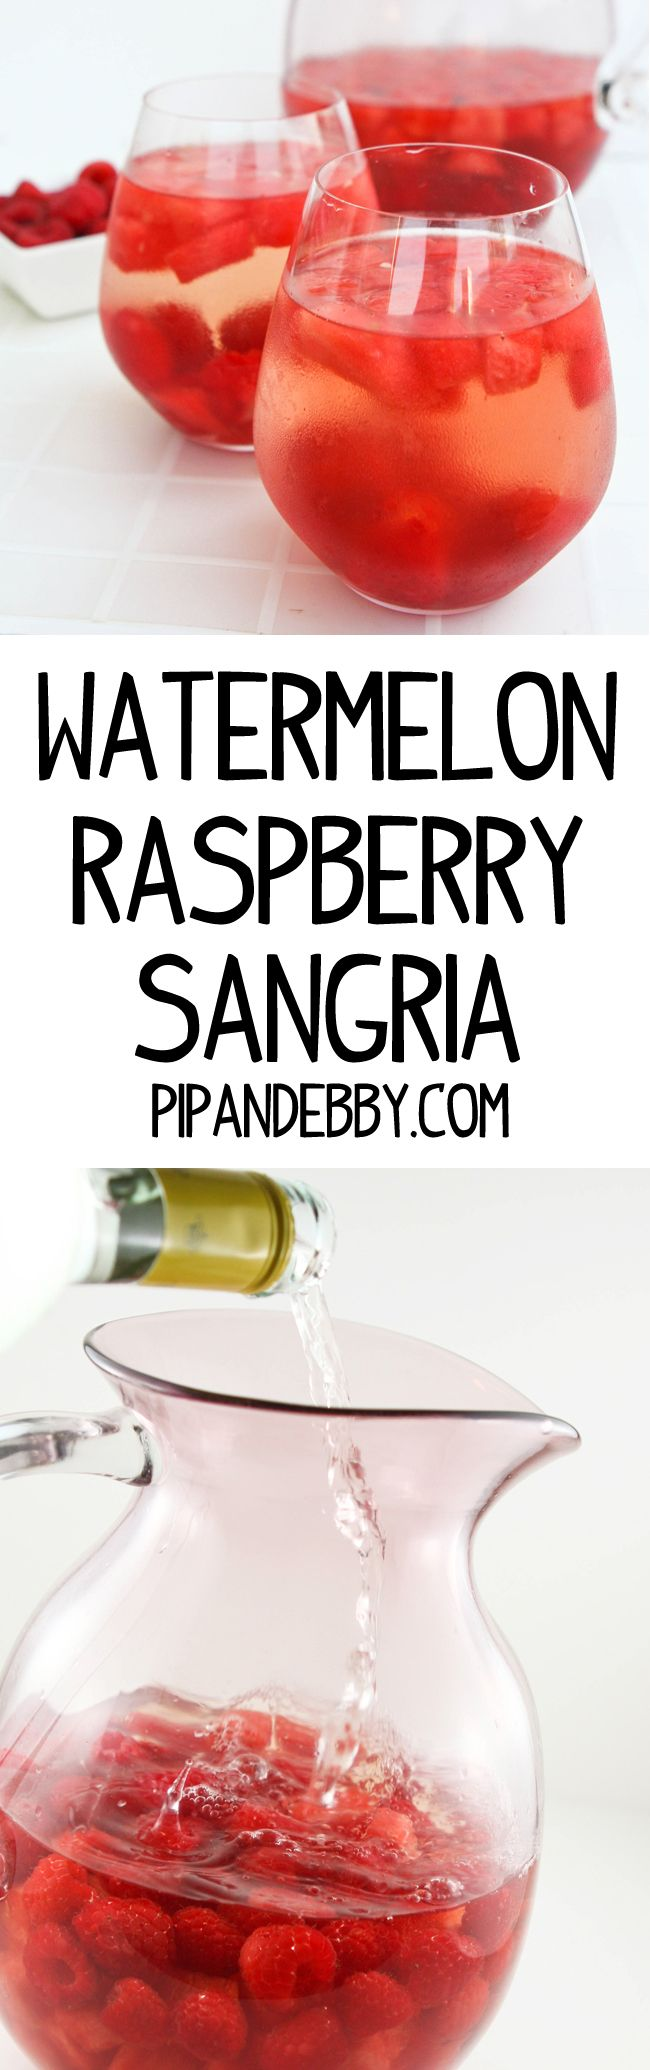 Watermelon Raspberry Sangria - this sangria is super refreshing!